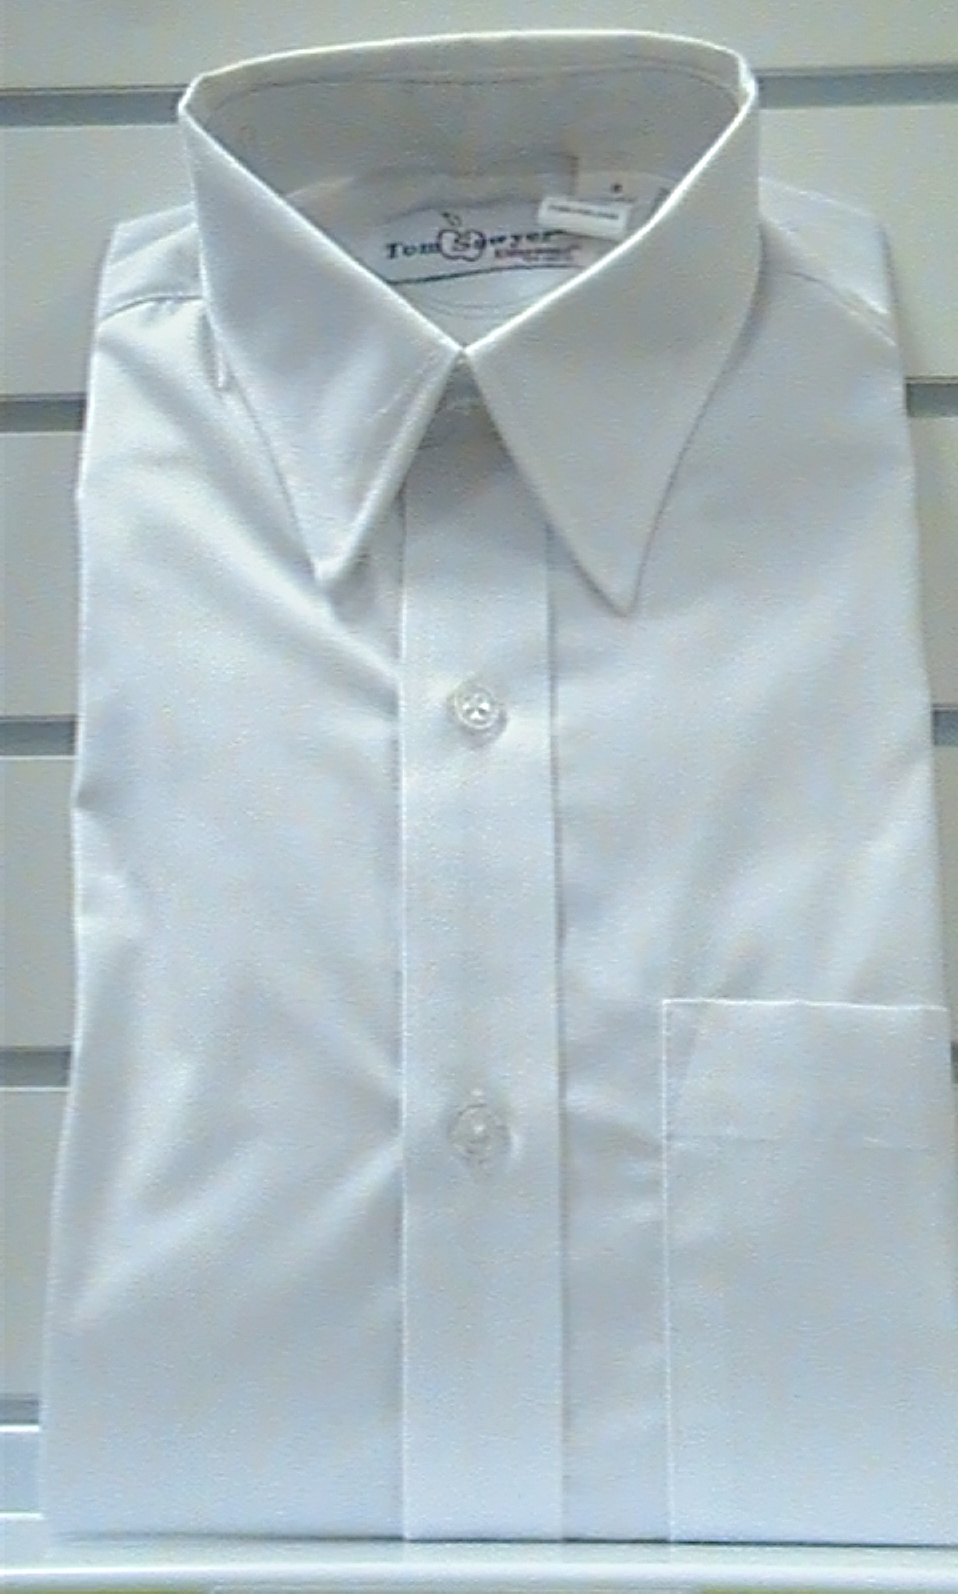 WhiteShort SleeveBroadcloth Shirt